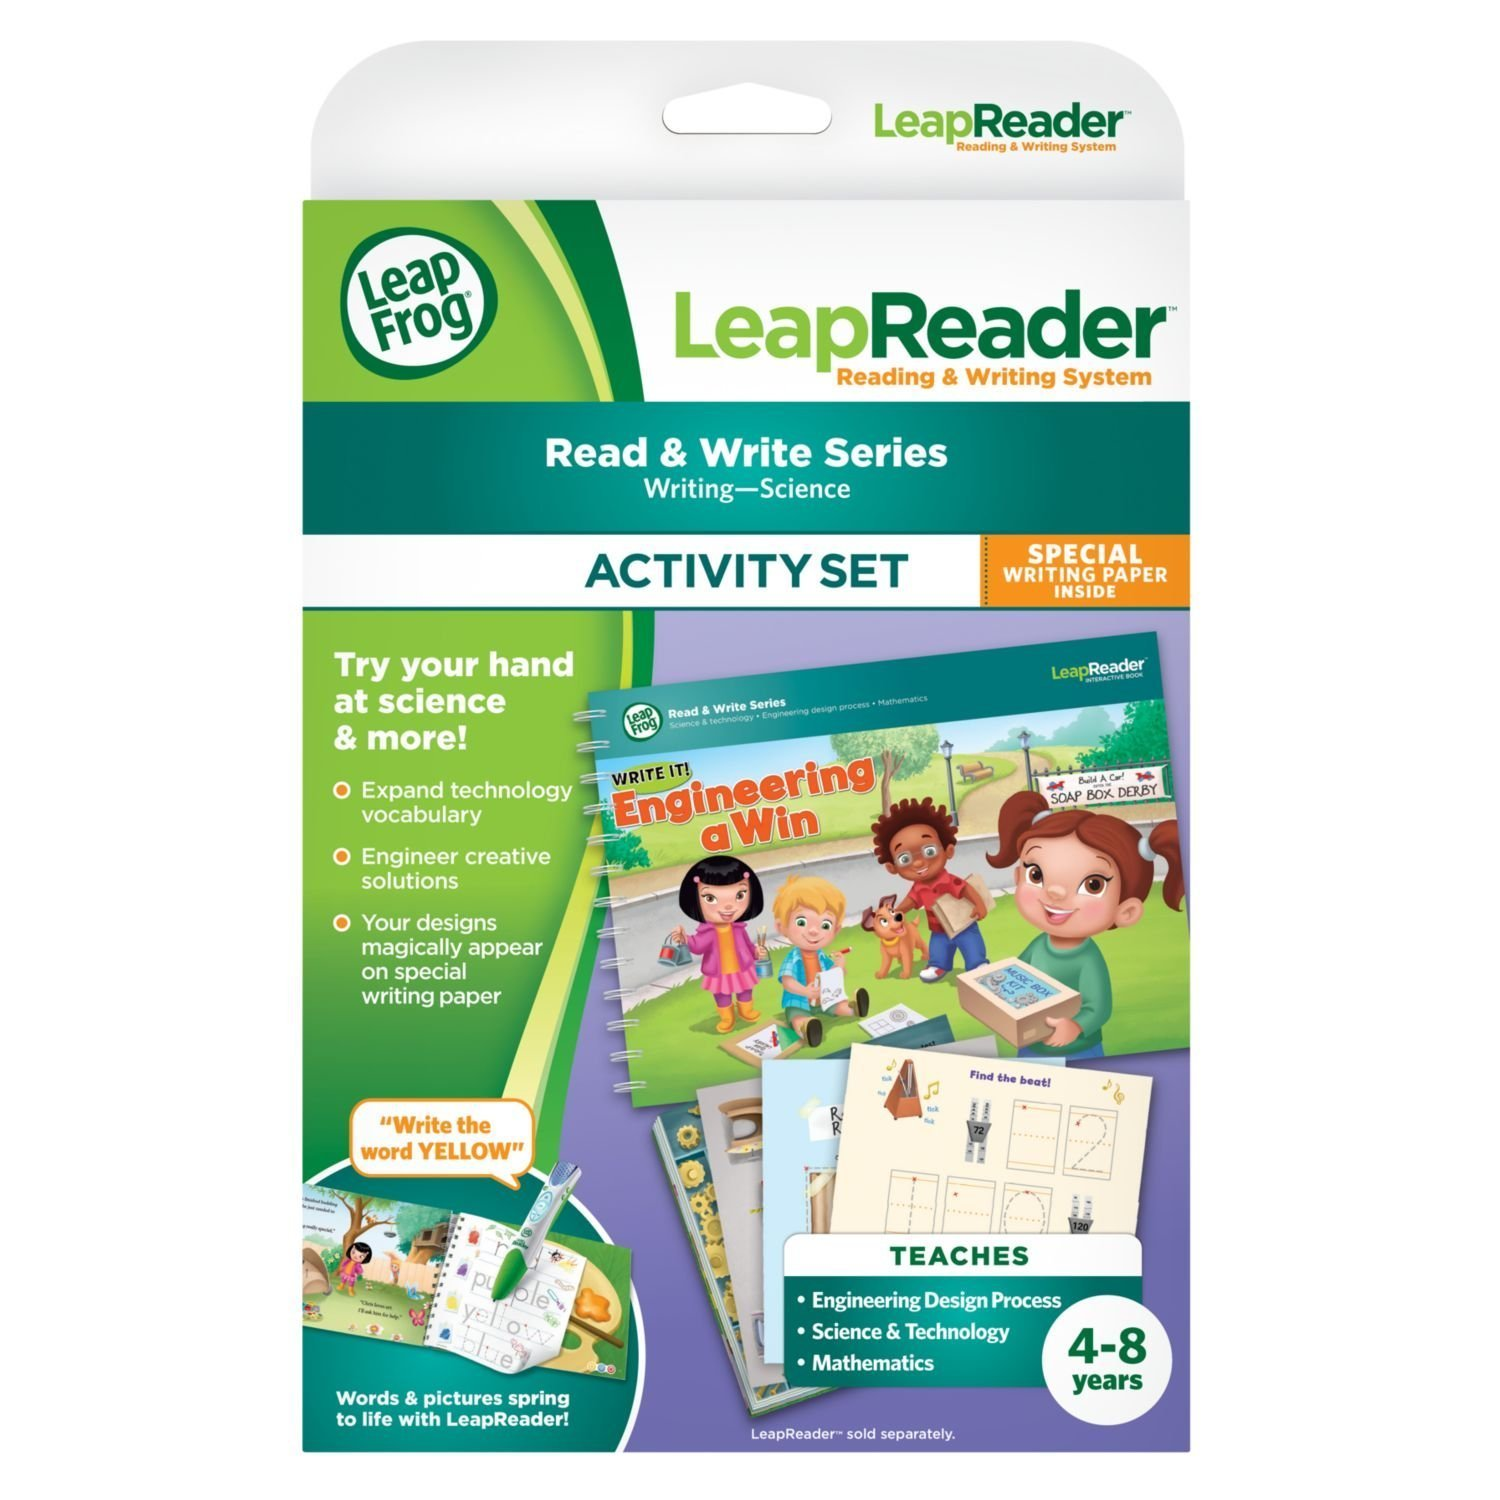 LeapFrog LeapReader Writing Workbook: Write it! Engineering A Win & LeapReader Read & Write System Green, Ages 4-8 Years, Interactive Learning System For Kids, STEM, Educational Tools, Activity Bundle by LeapFrog (Image #2)